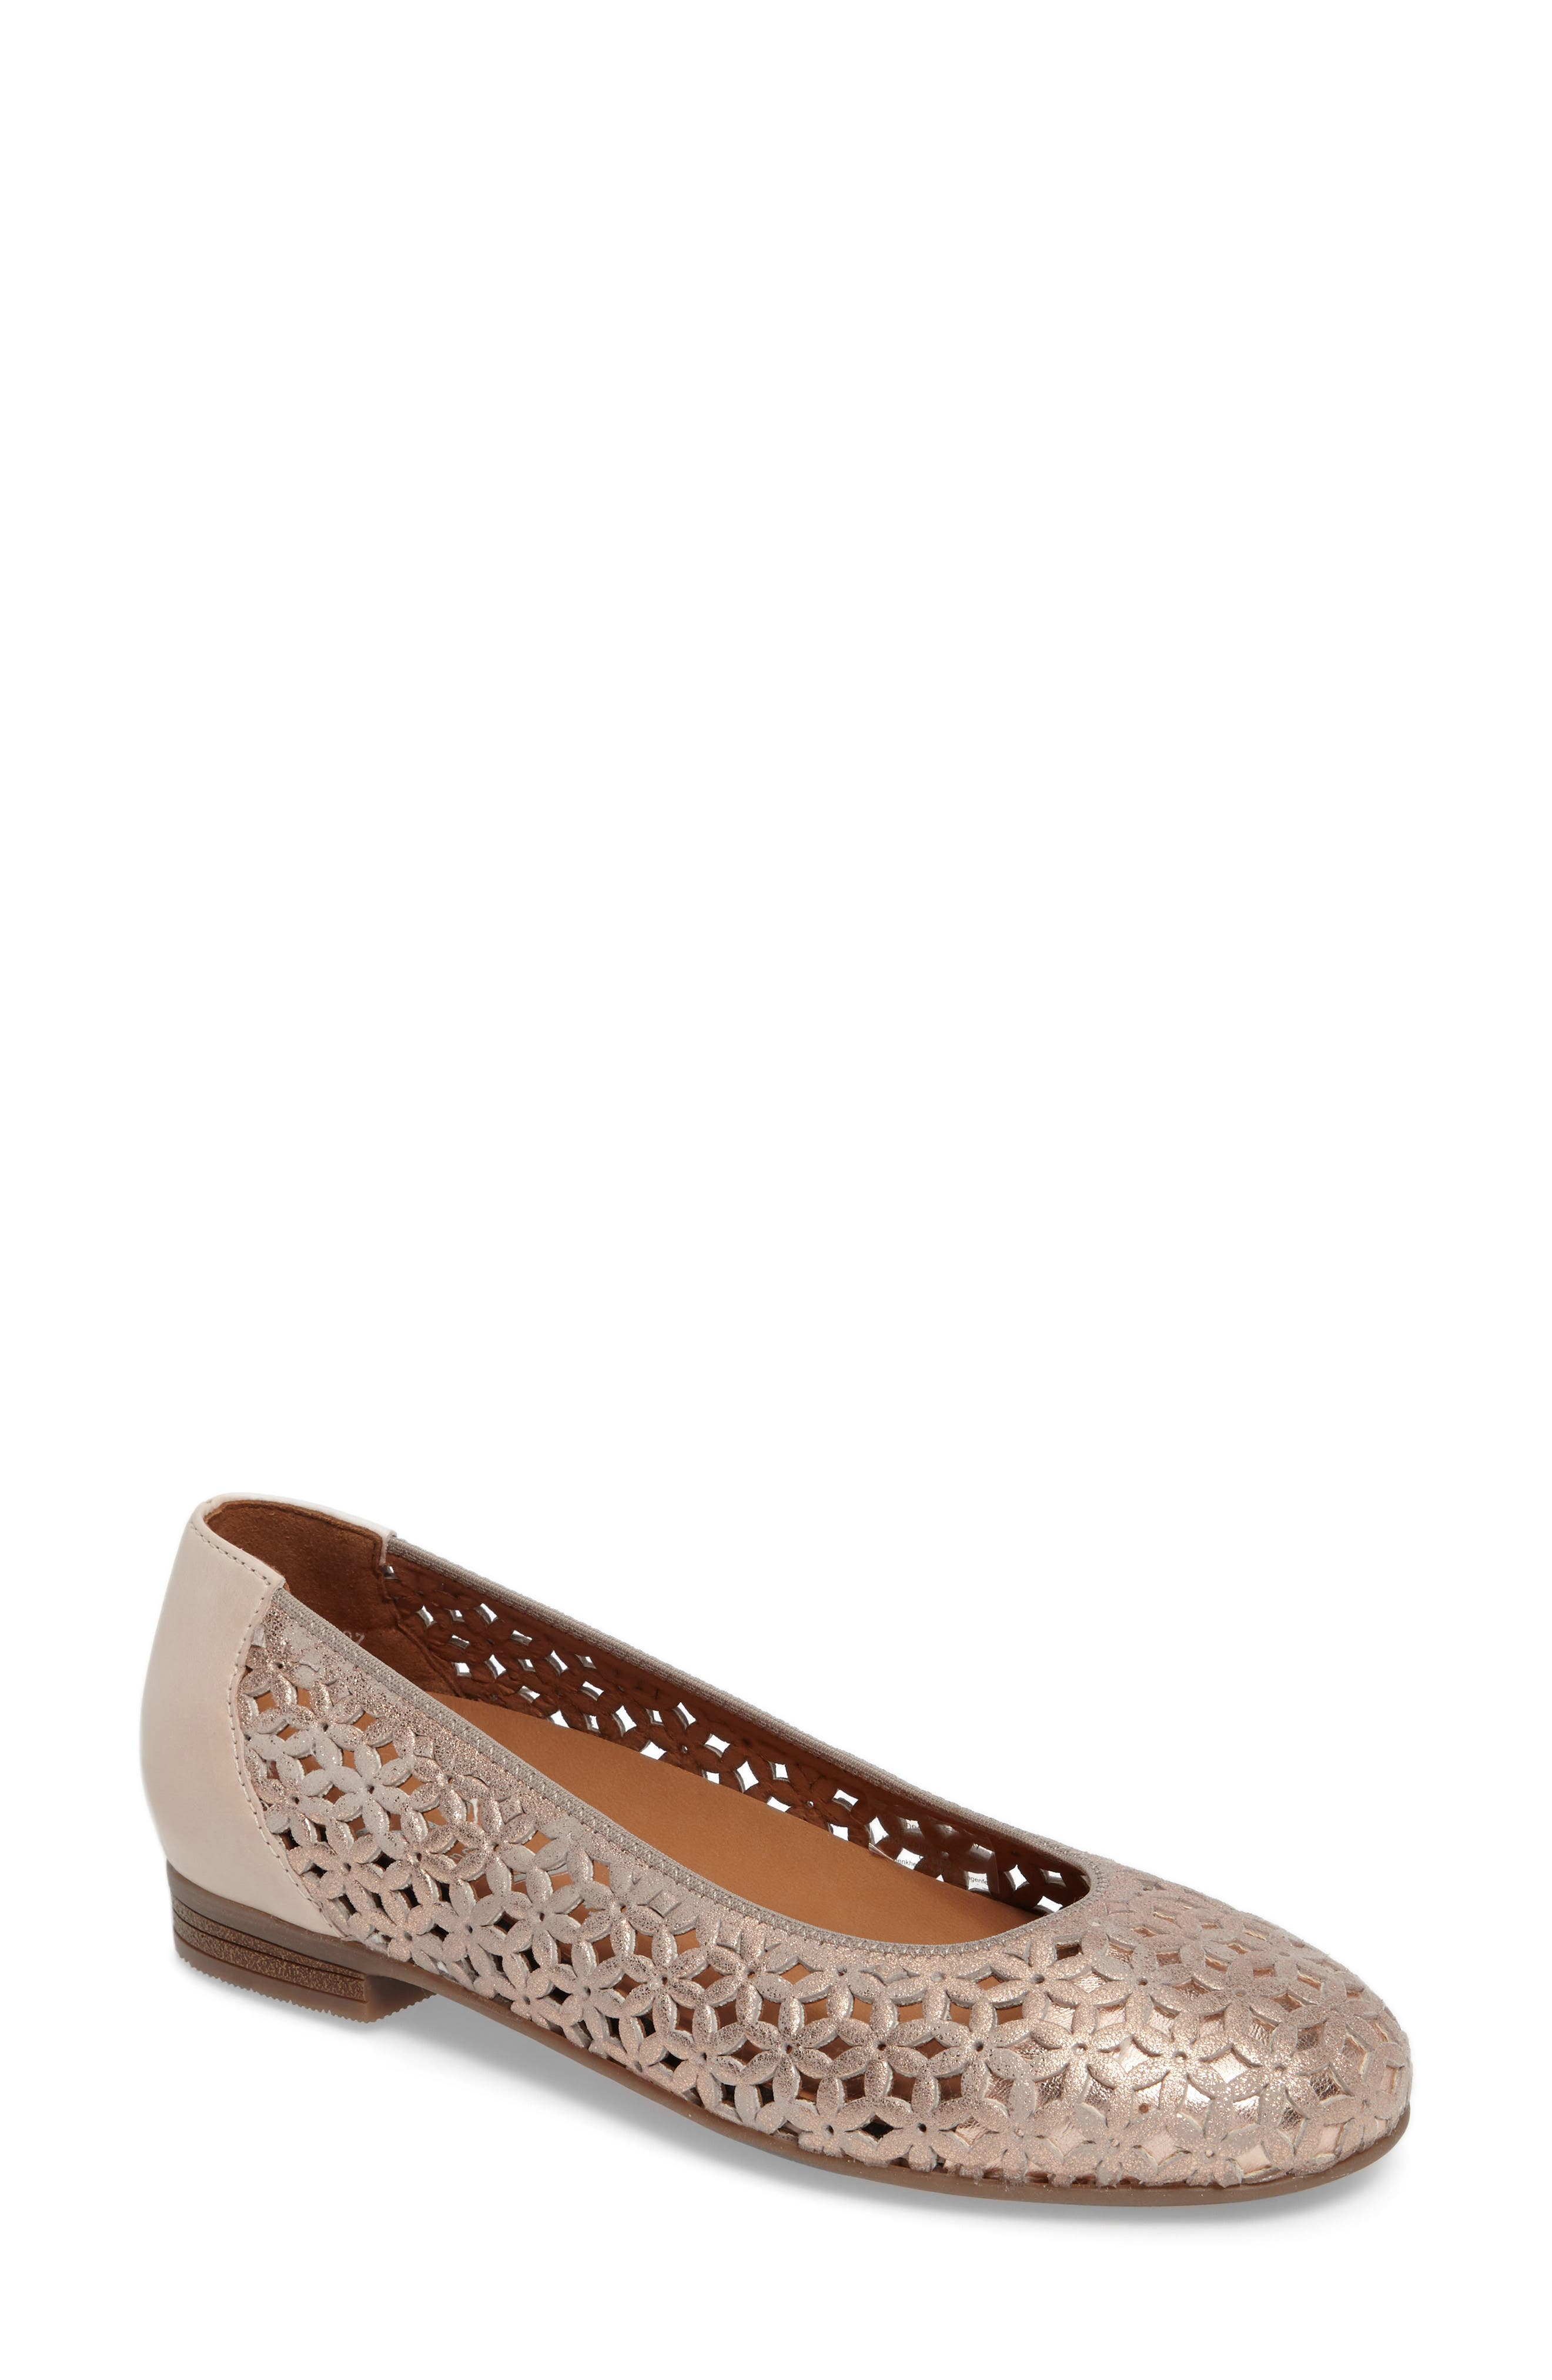 Stephanie Perforated Ballet Flat,                             Main thumbnail 1, color,                             Rose Gold Leather